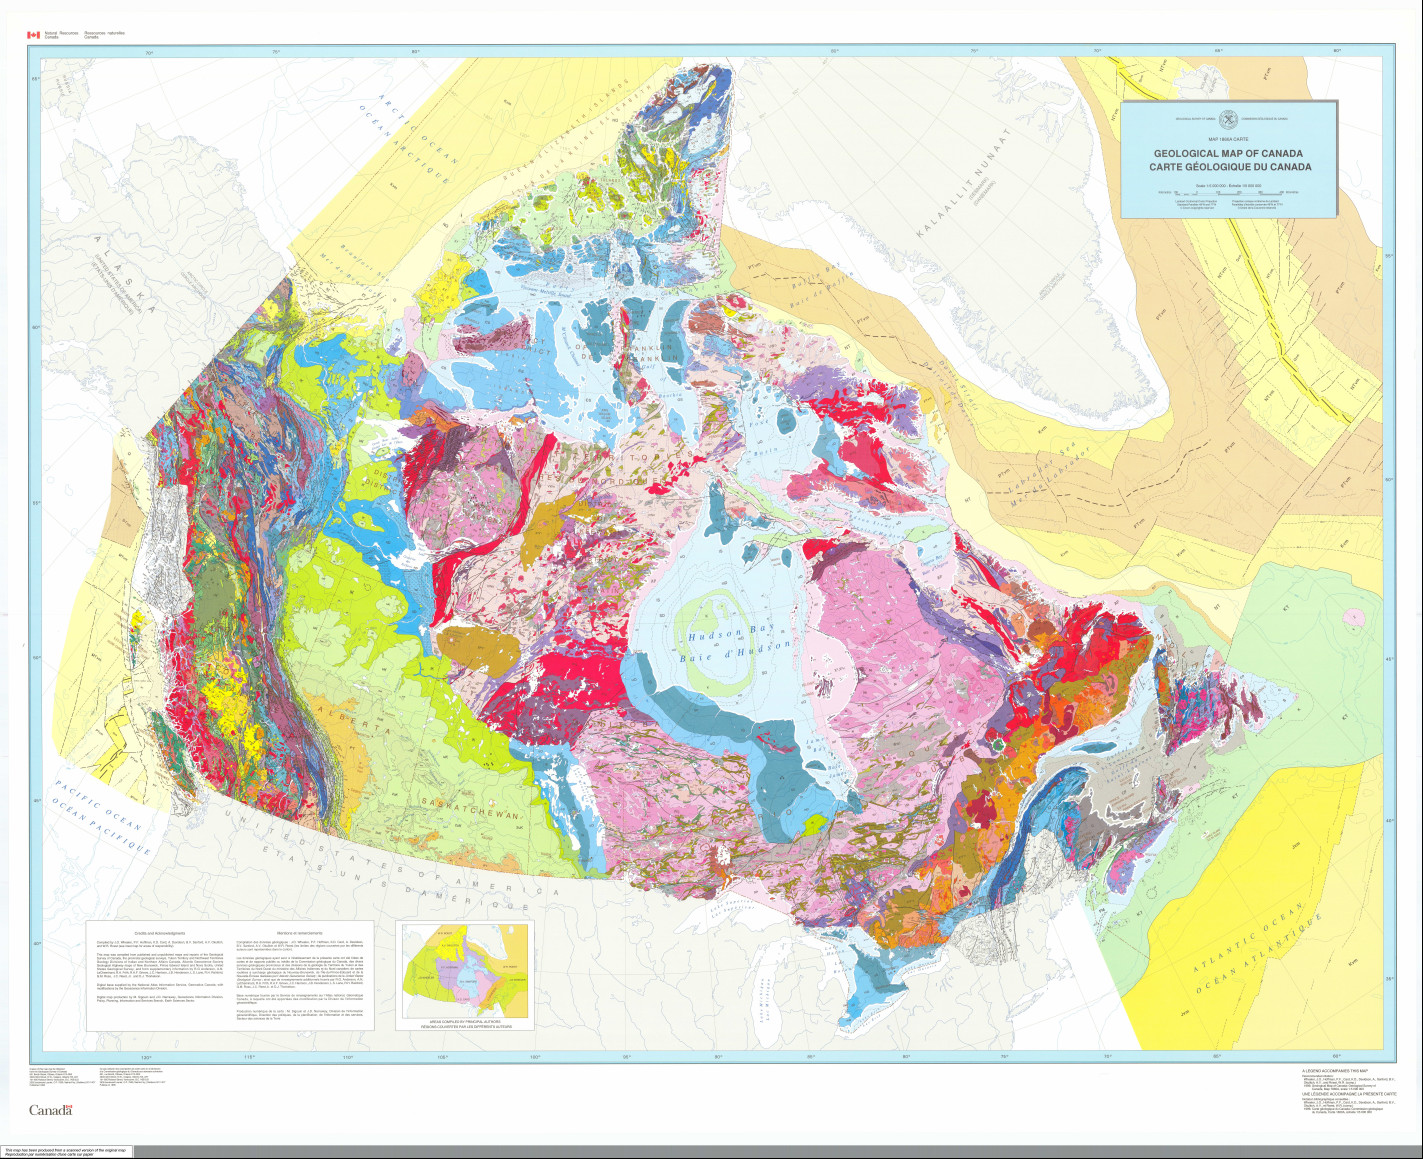 Pics Of Canada Map.159 New Geological Map Of Canada 1996 Science Gc Ca